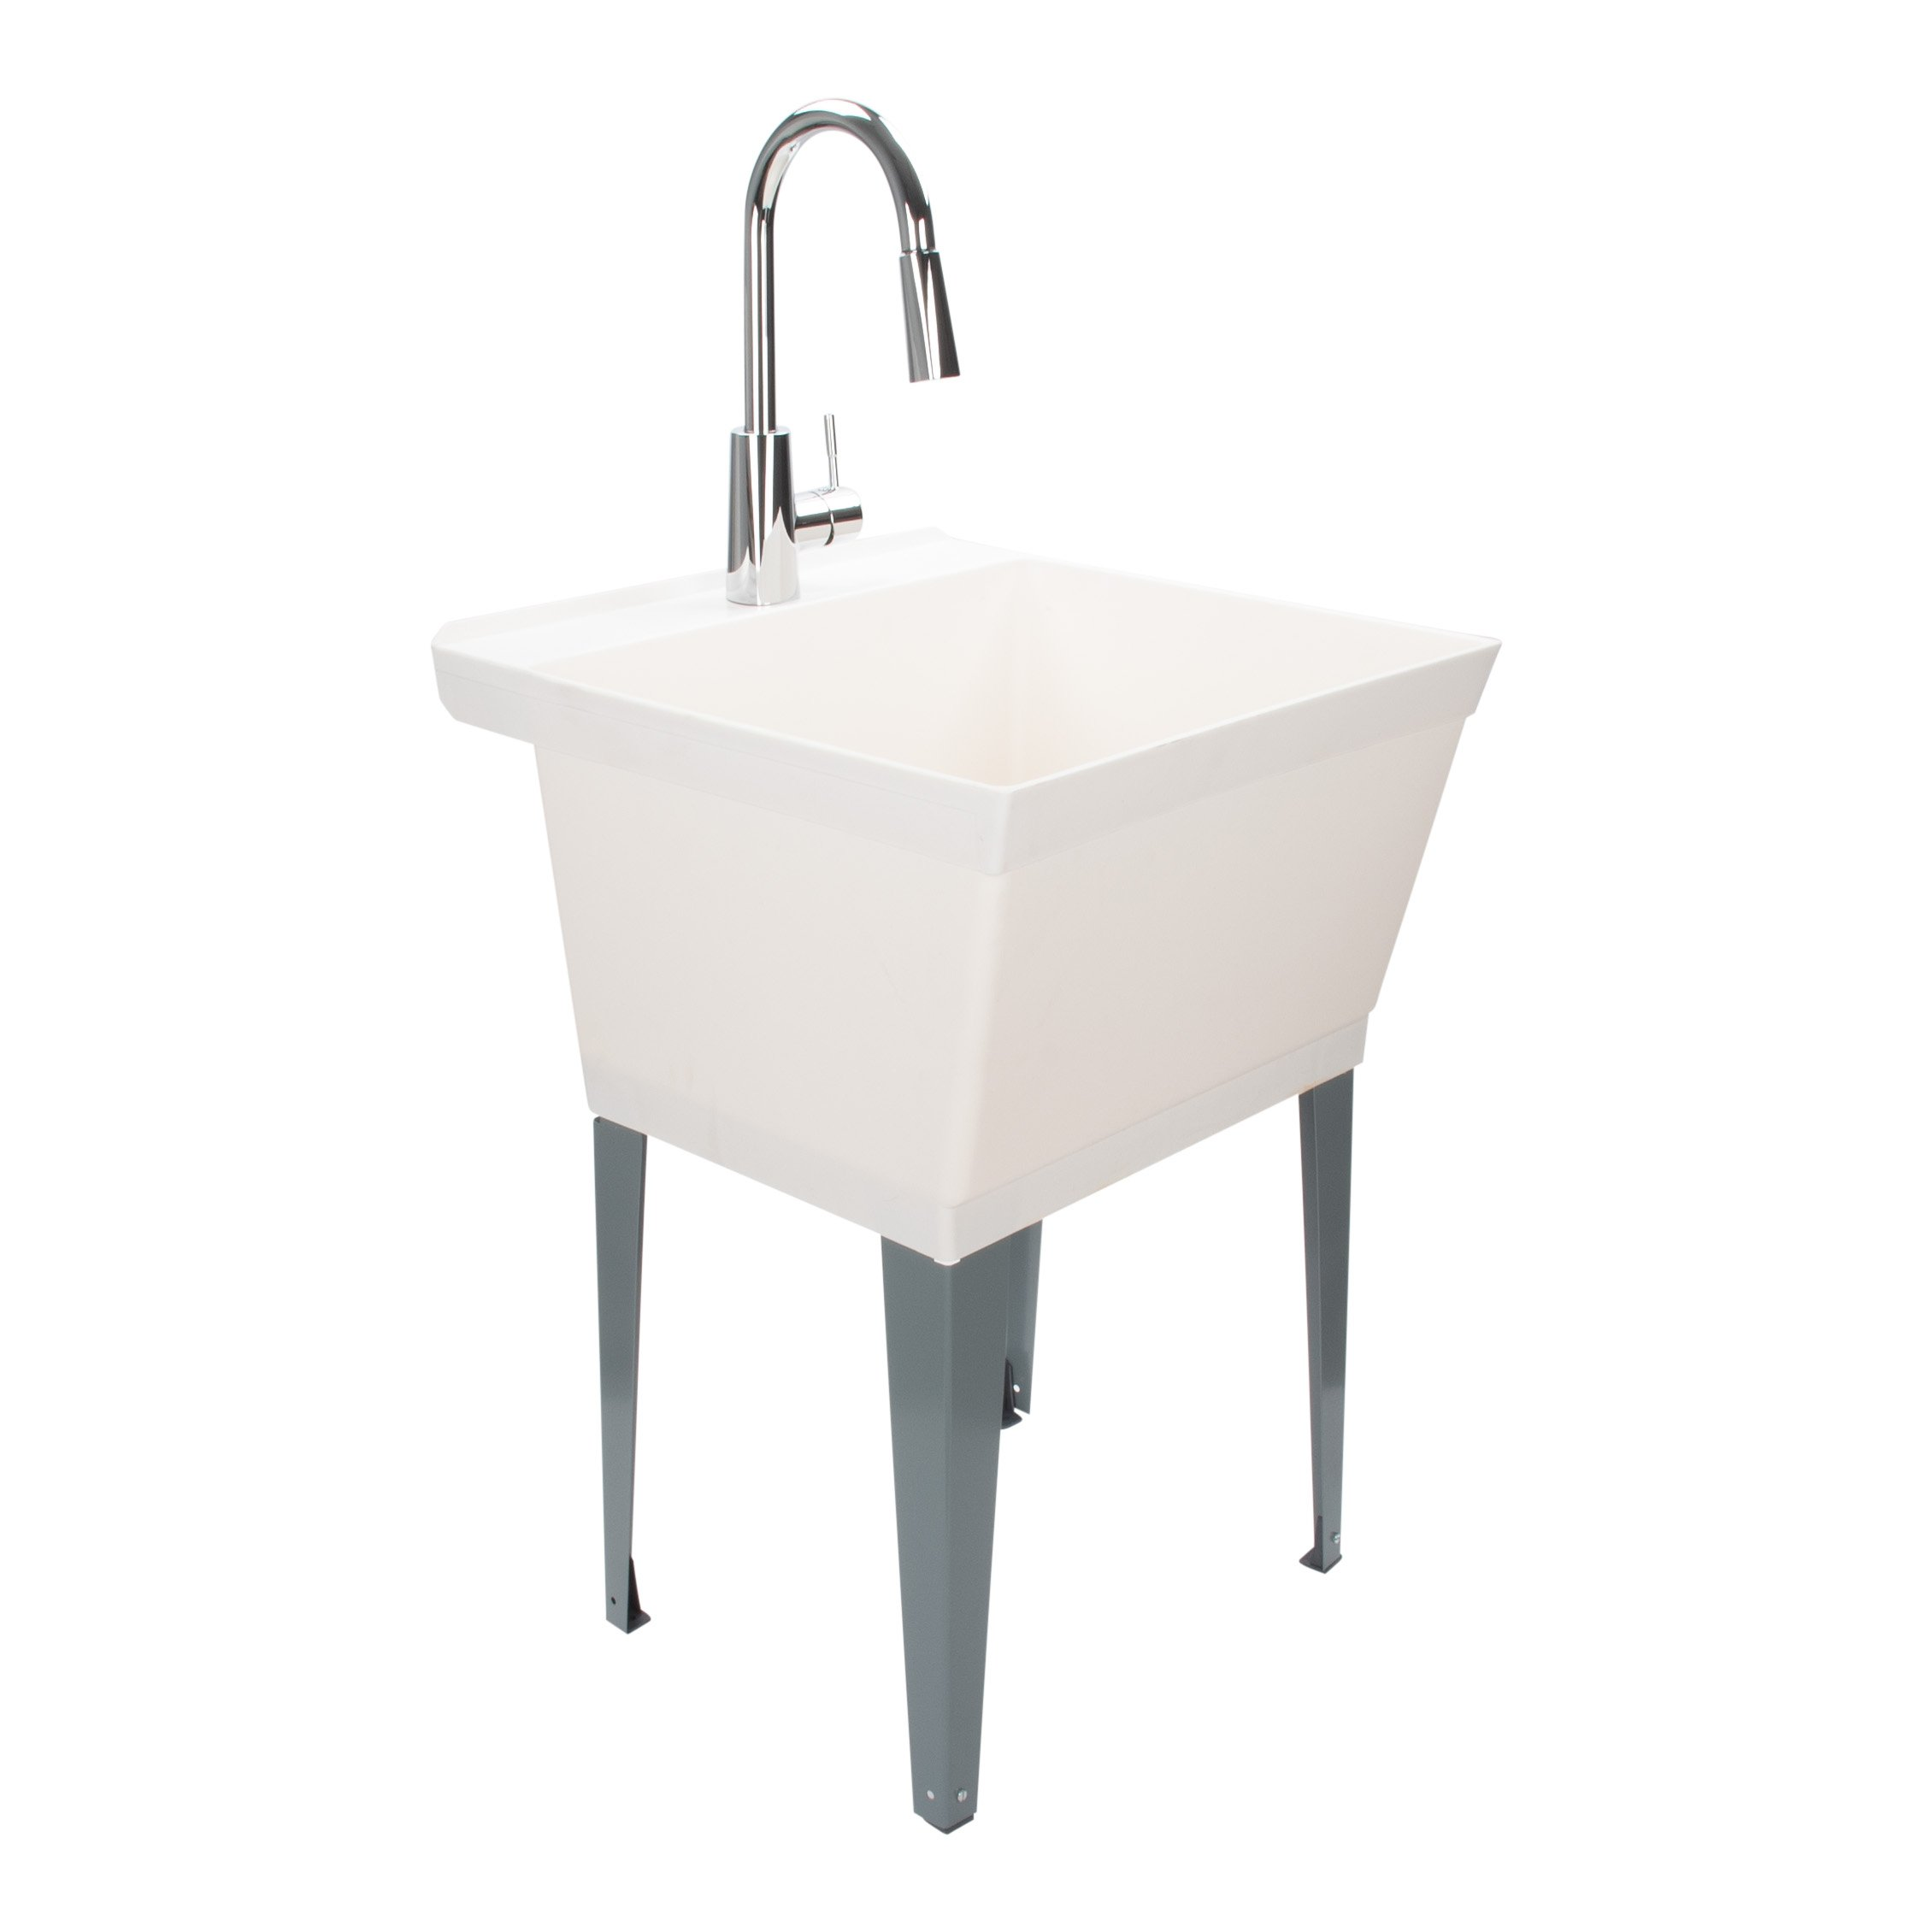 Utility Sink.Details About Laundry Sink Utility Tub With High Arc Chrome Kitchen Faucet By Maya Pull Down